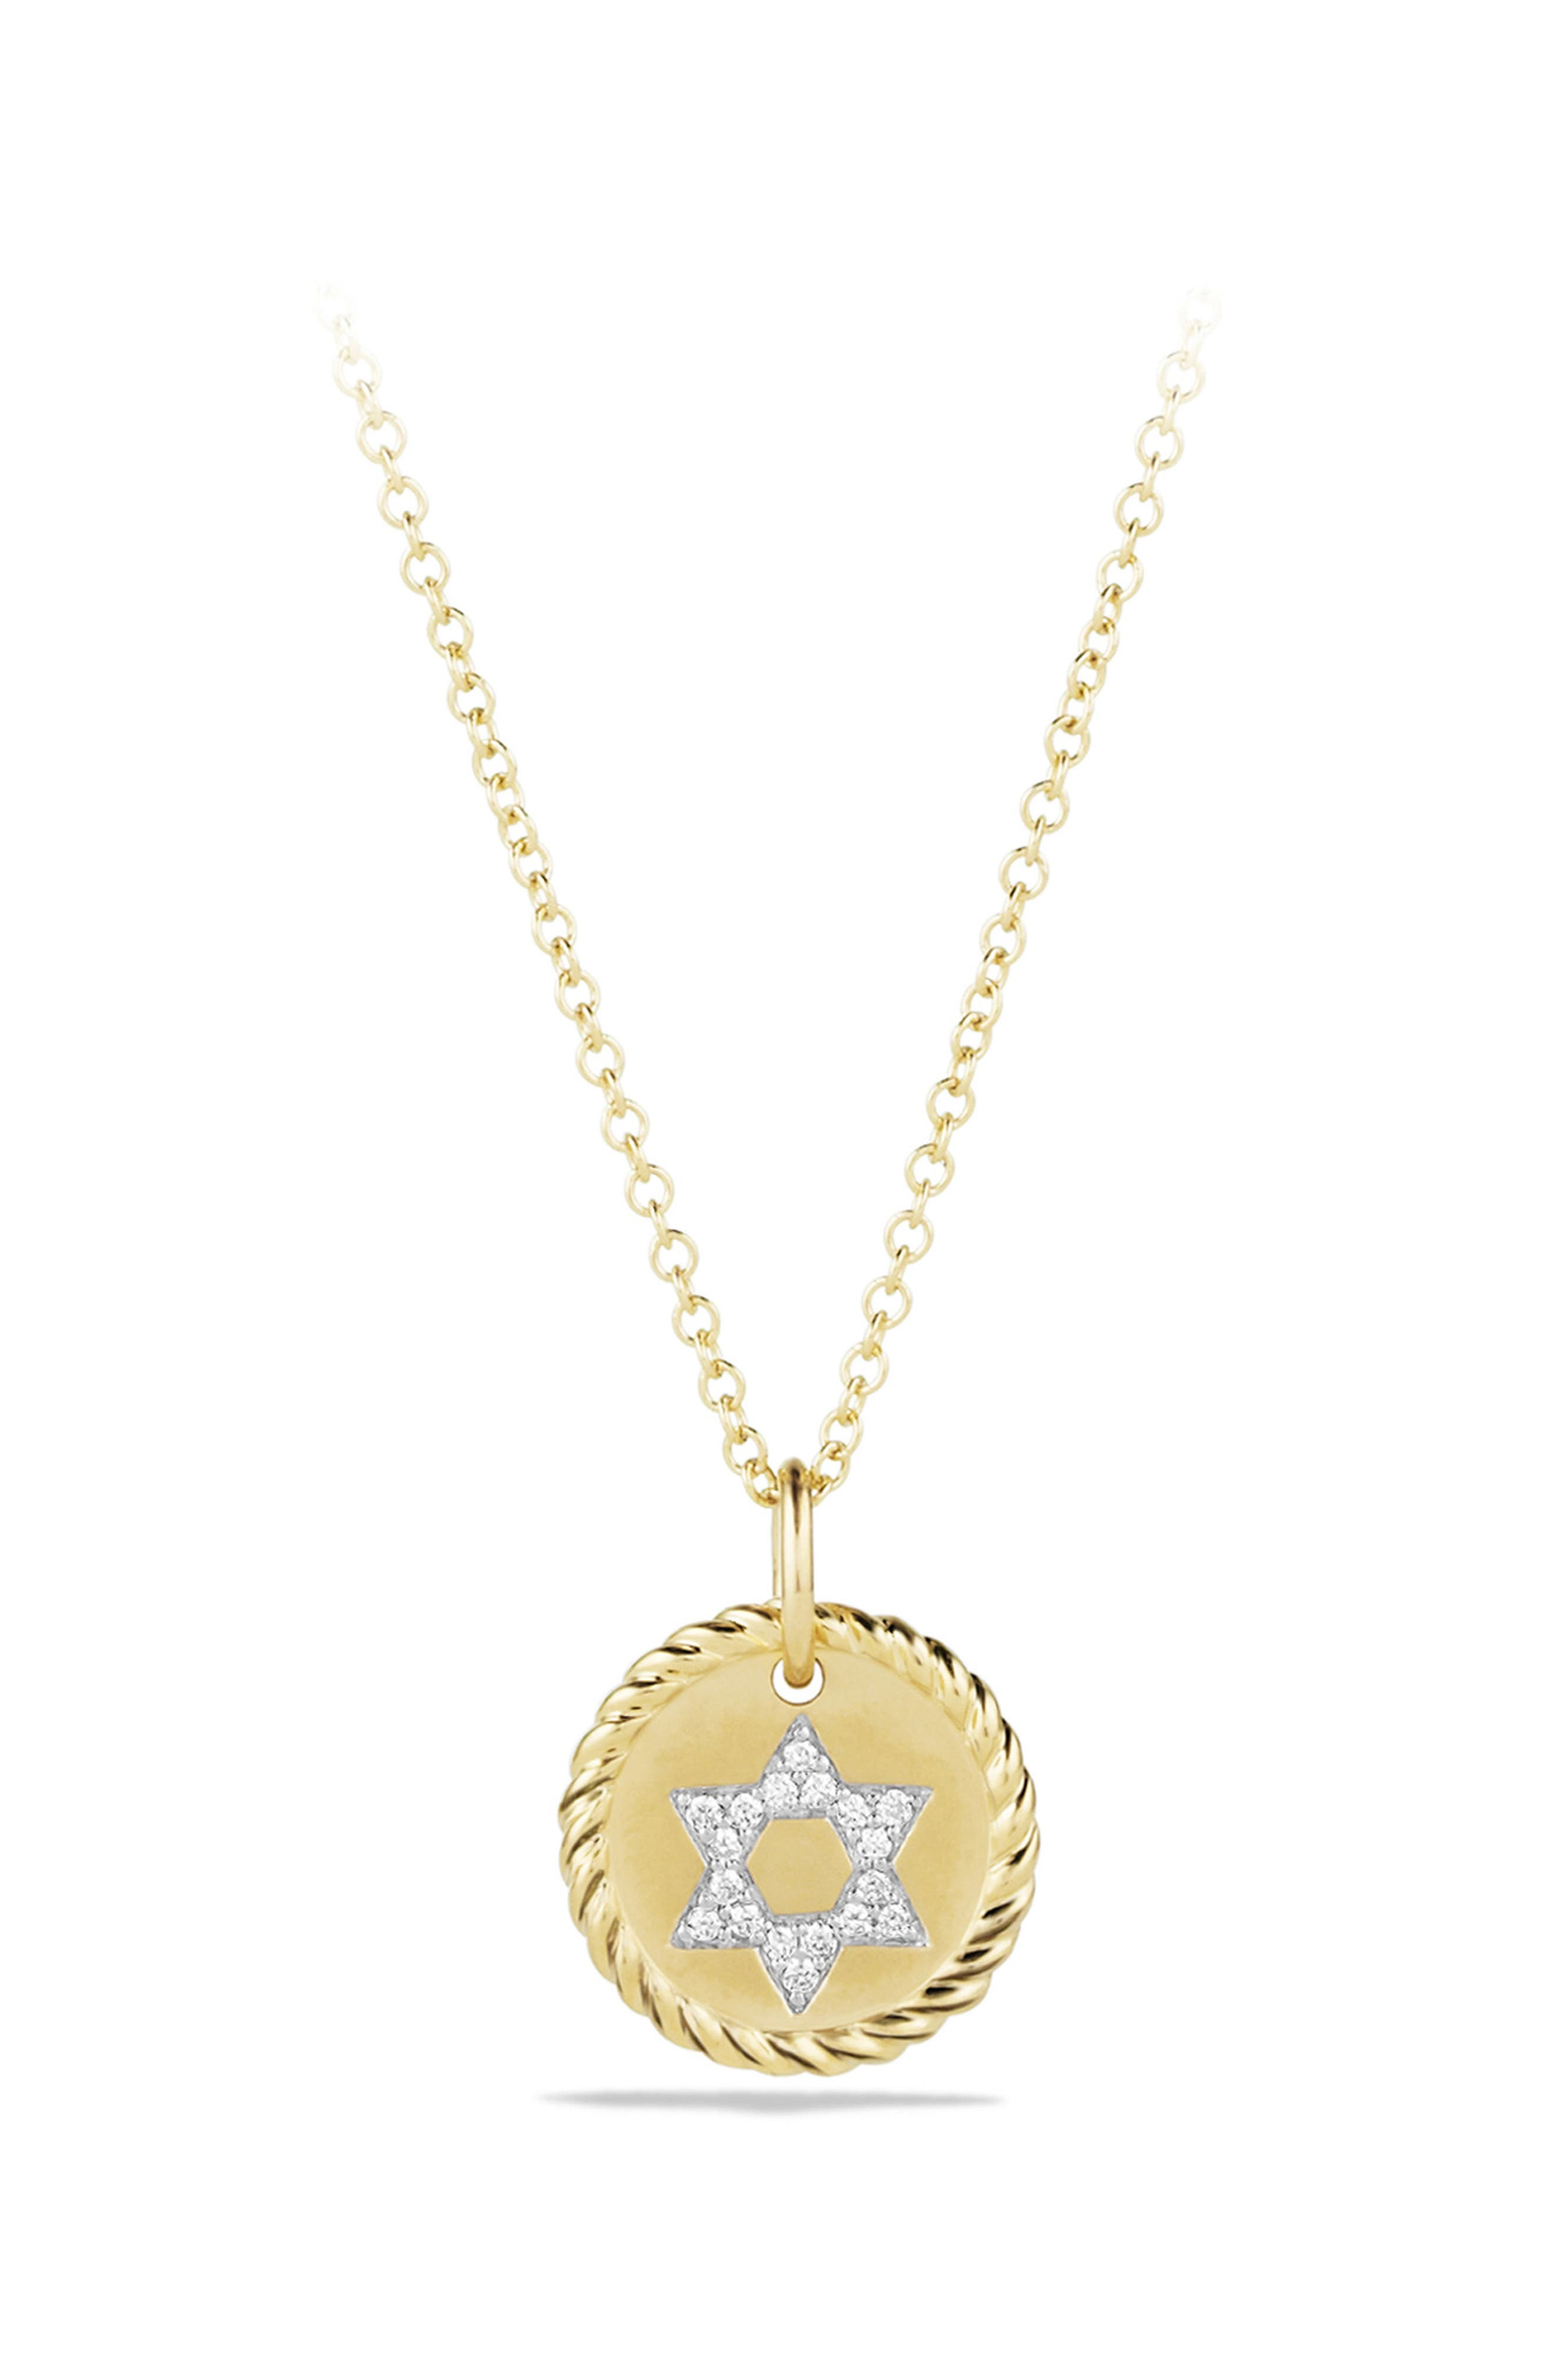 'Cable Collectibles' Star of David Charm Necklace with Diamonds in Gold,                         Main,                         color, DIAMOND